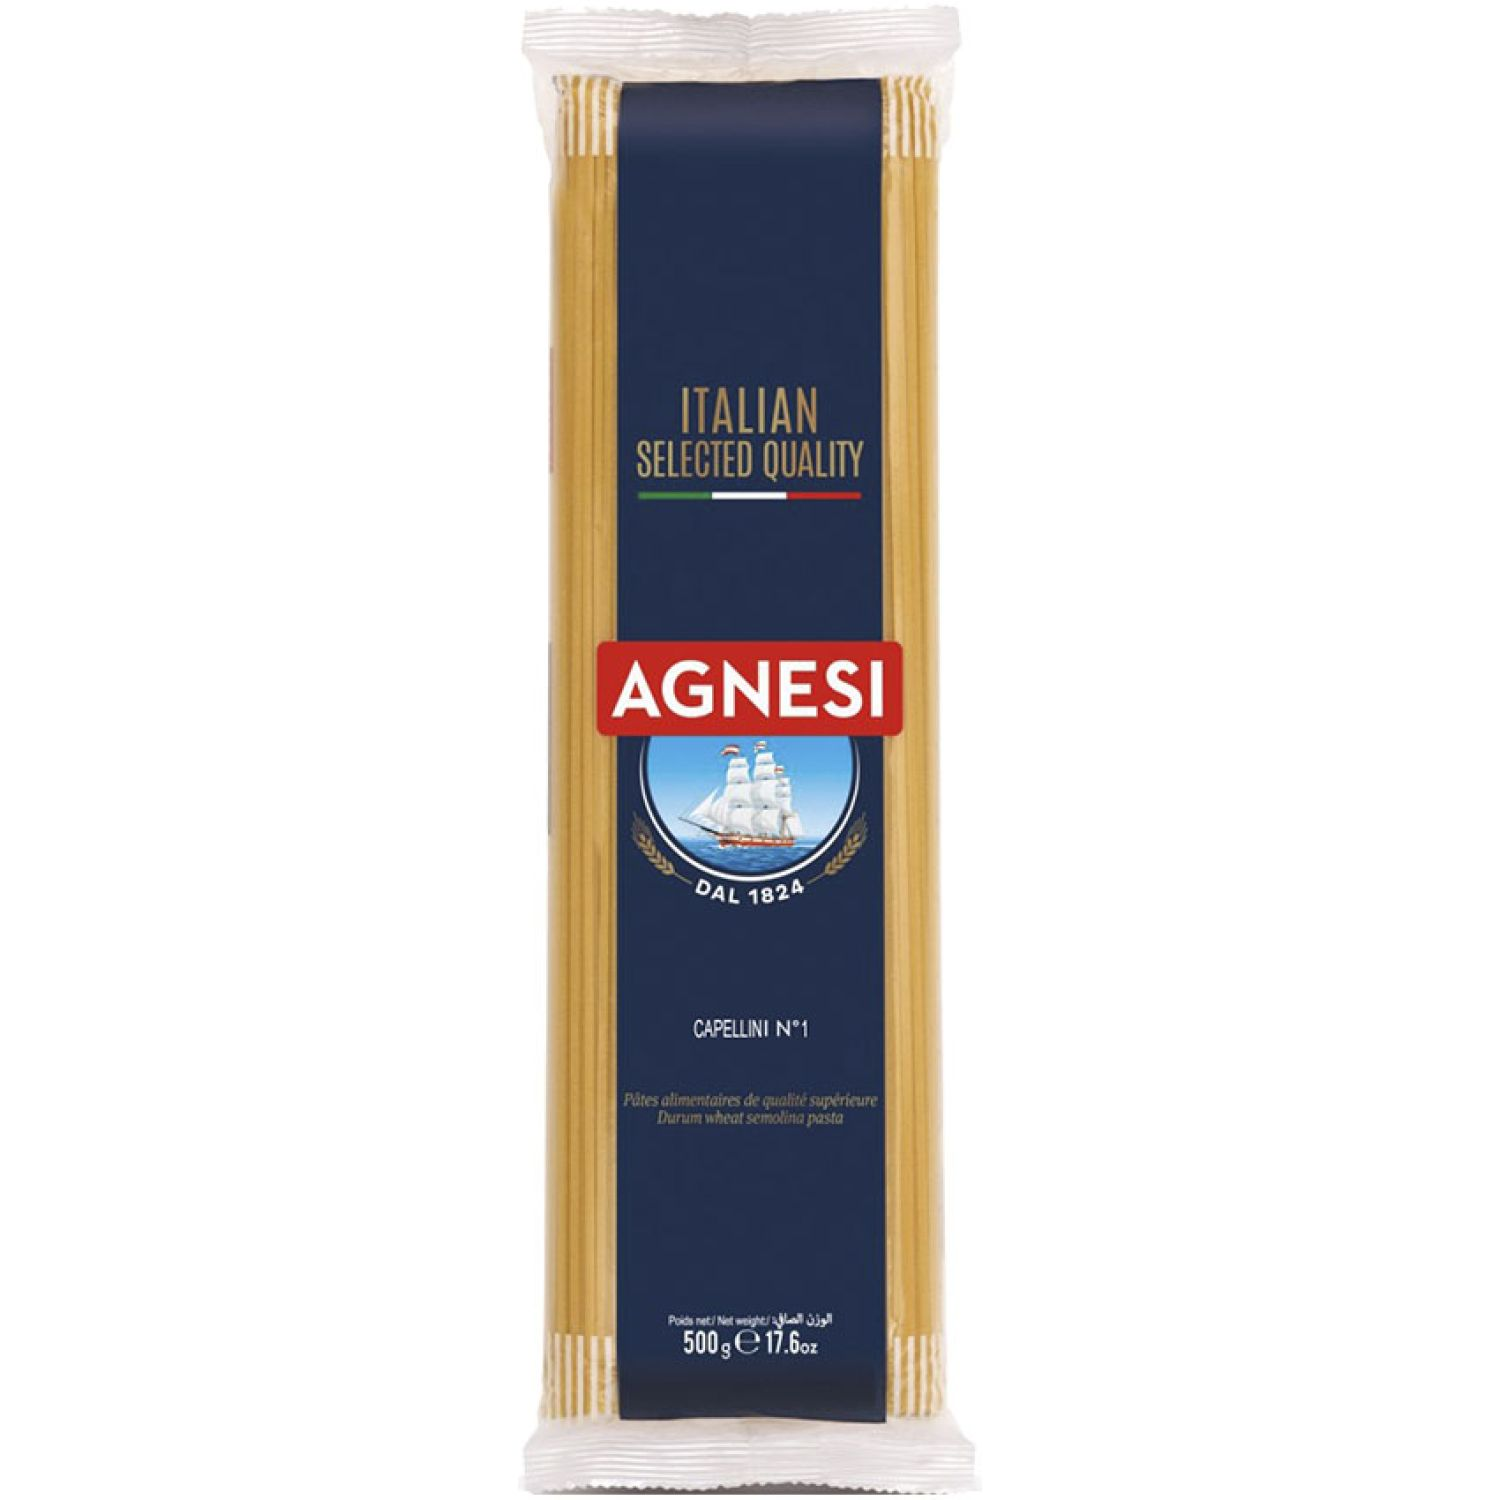 AGNESI Capellini 500 Gr Sin color Leche de arroz